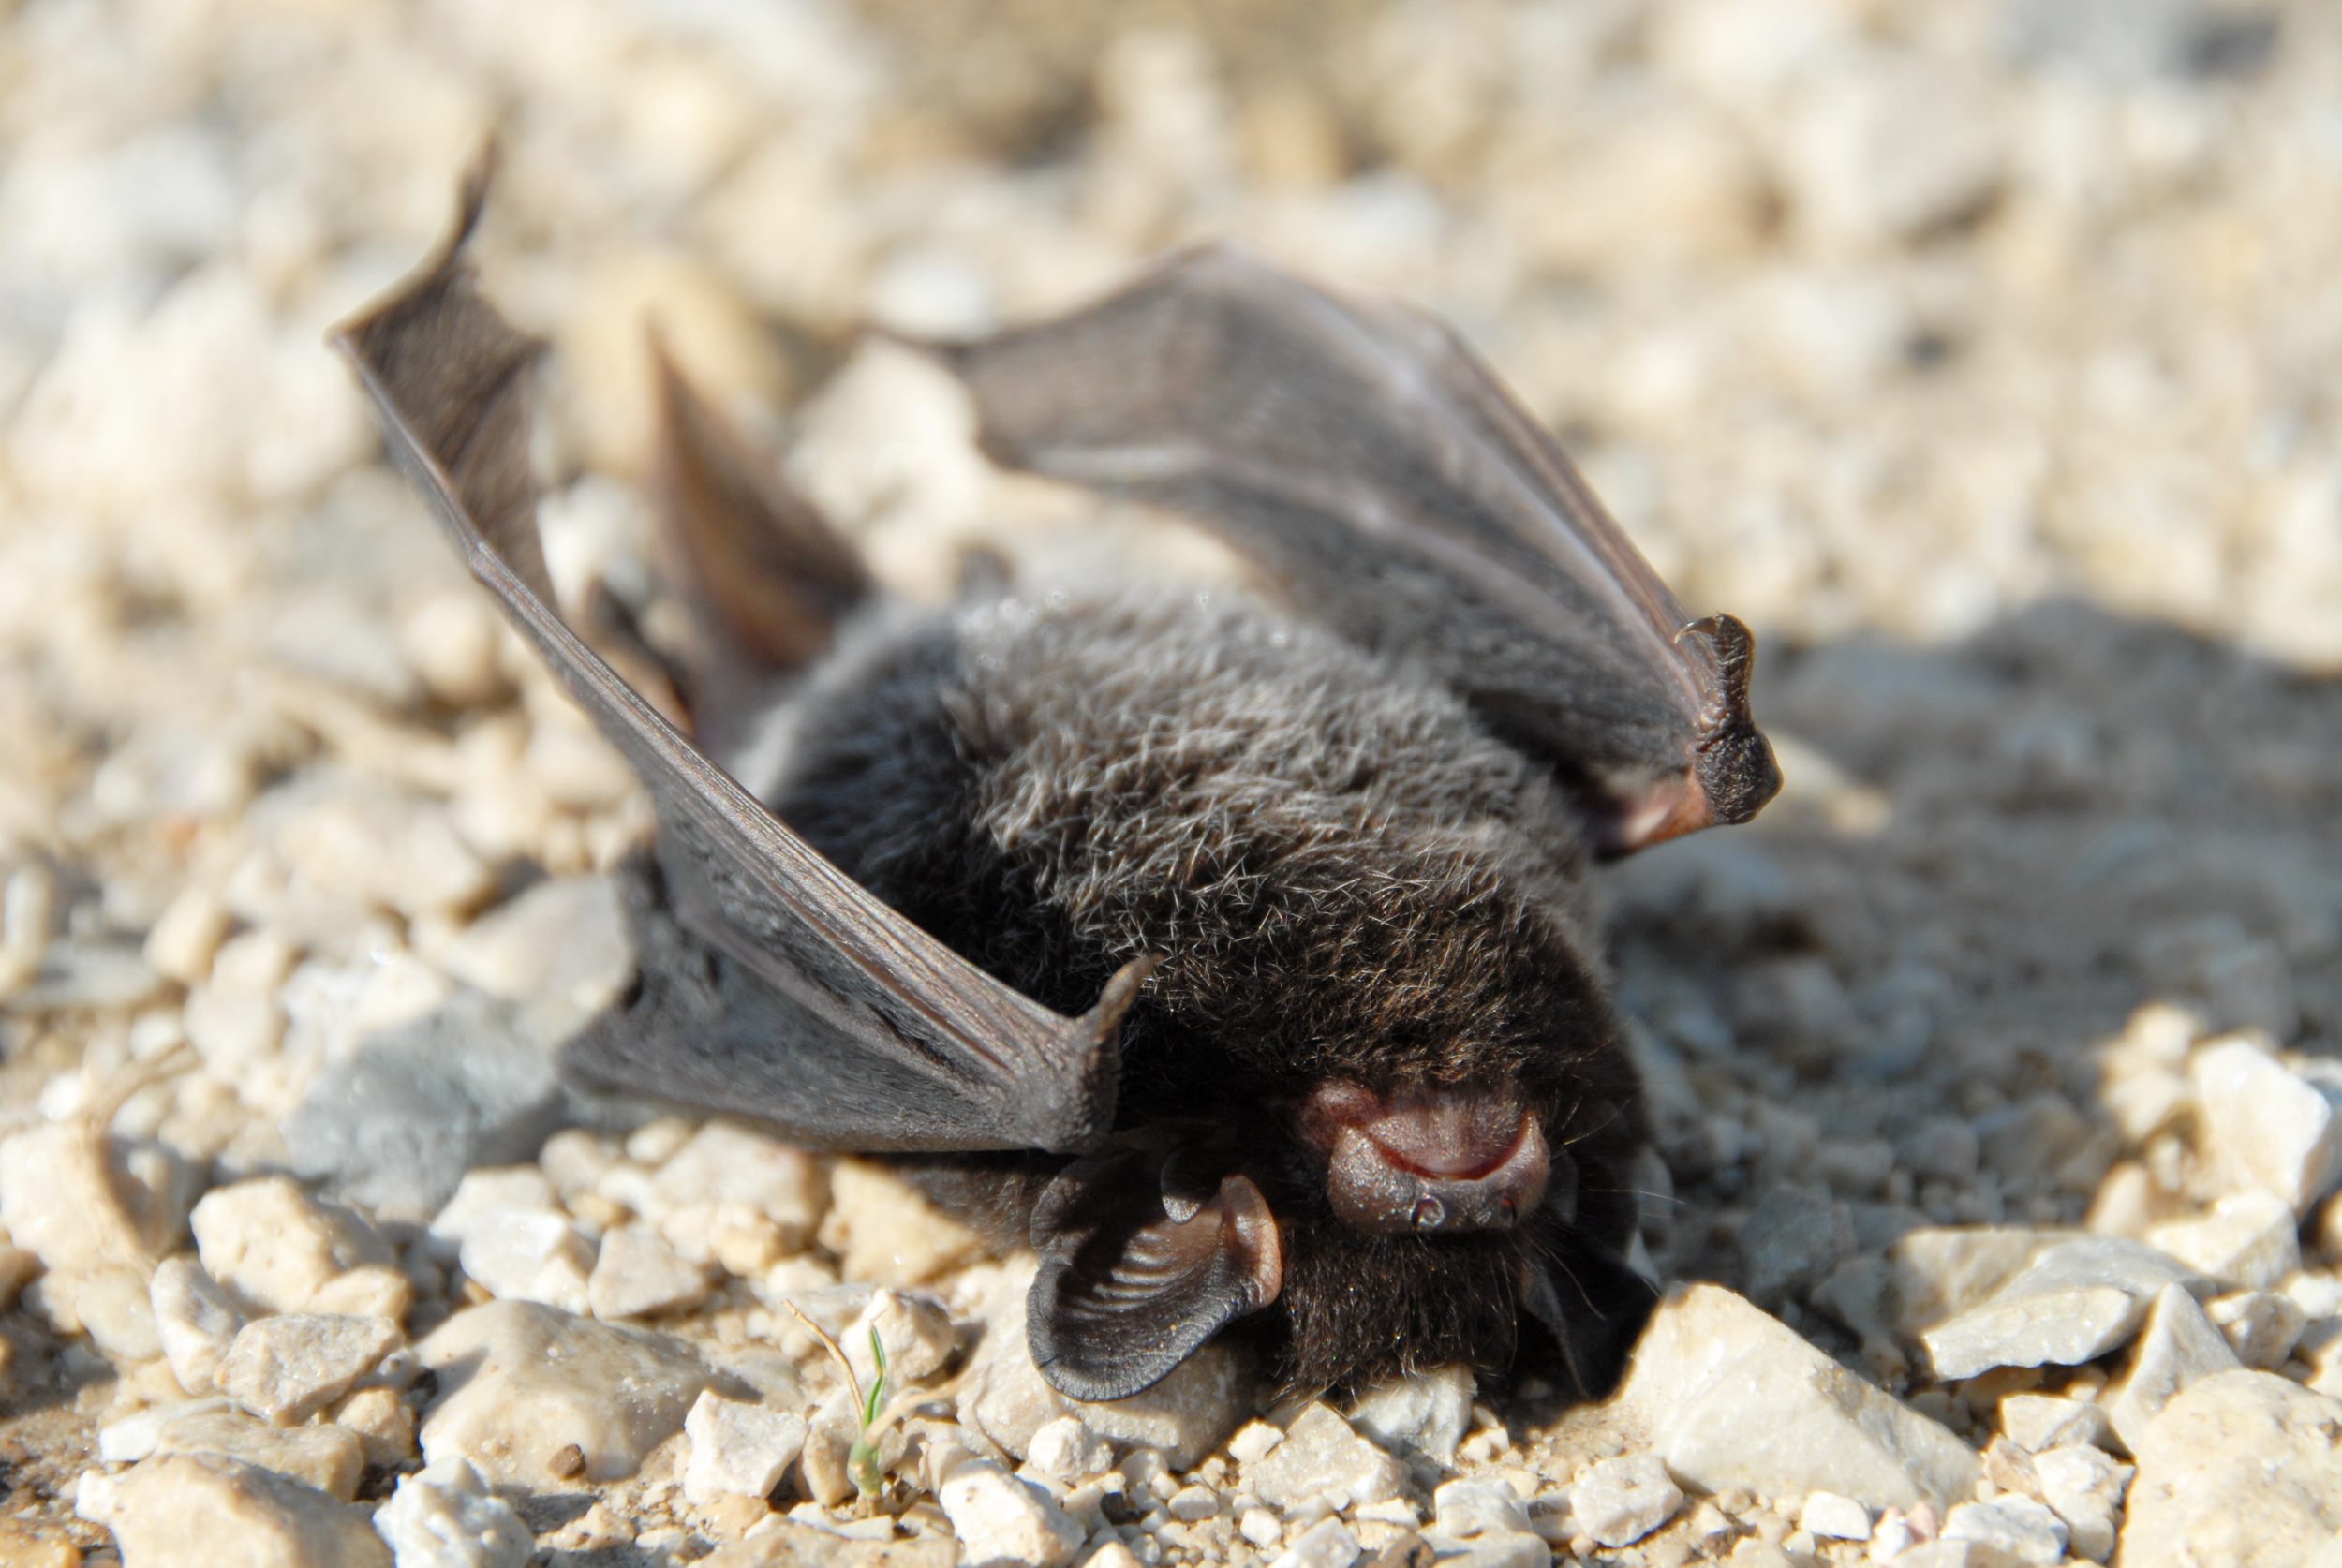 Silver-haired bat ( Lasionycteris noctivagans ) found dead under a wind turbine in southeastern Wisconsin, USA. Photo by Tom Underwood.